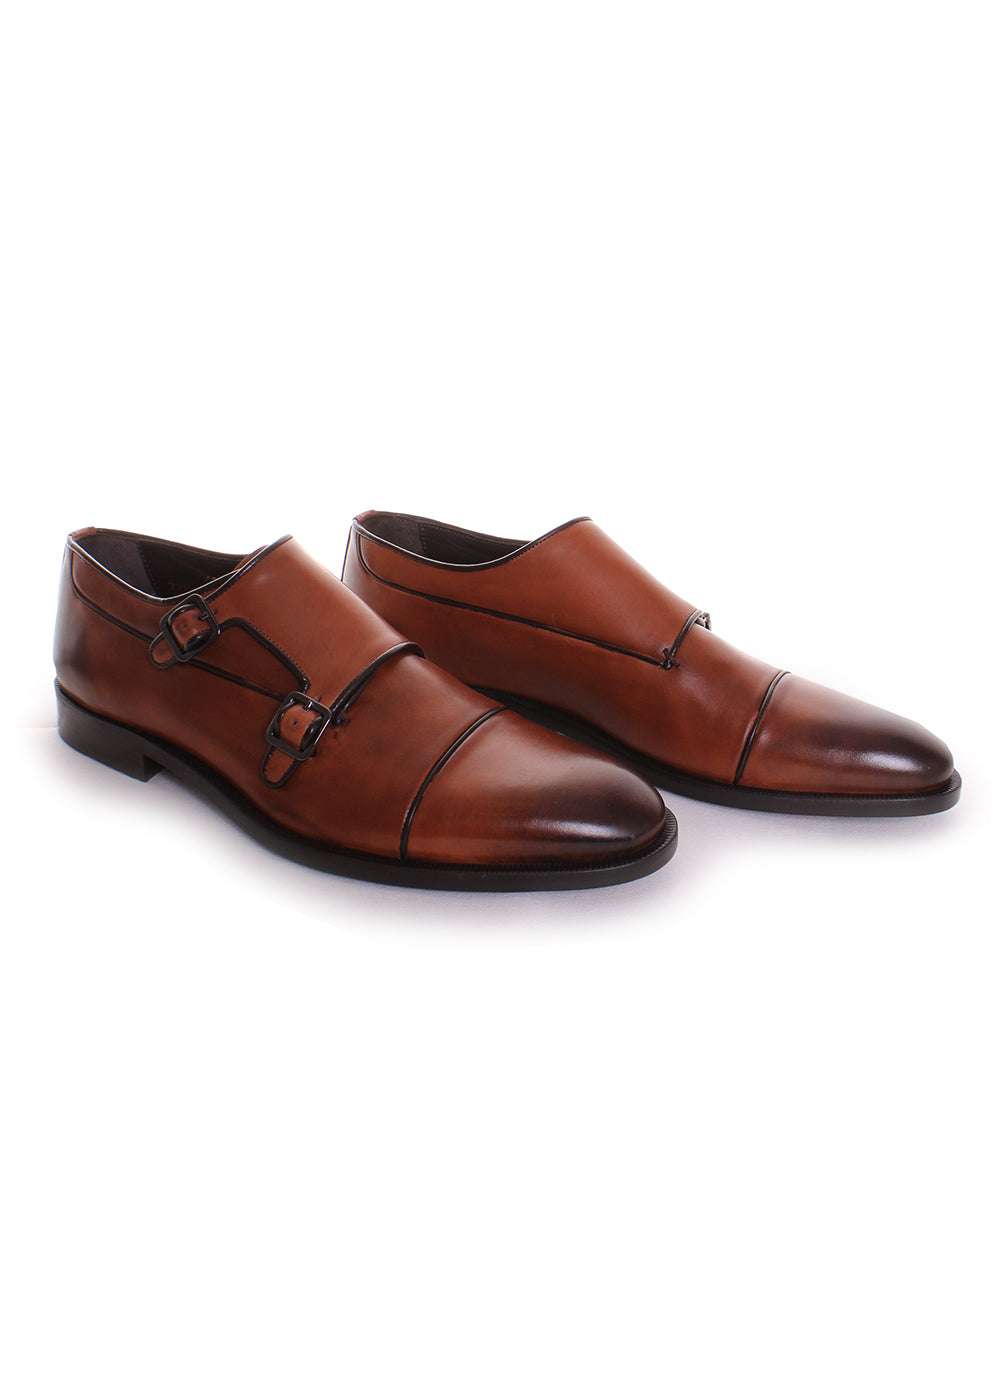 Canali Double Strap Monk Oxfords in Brown